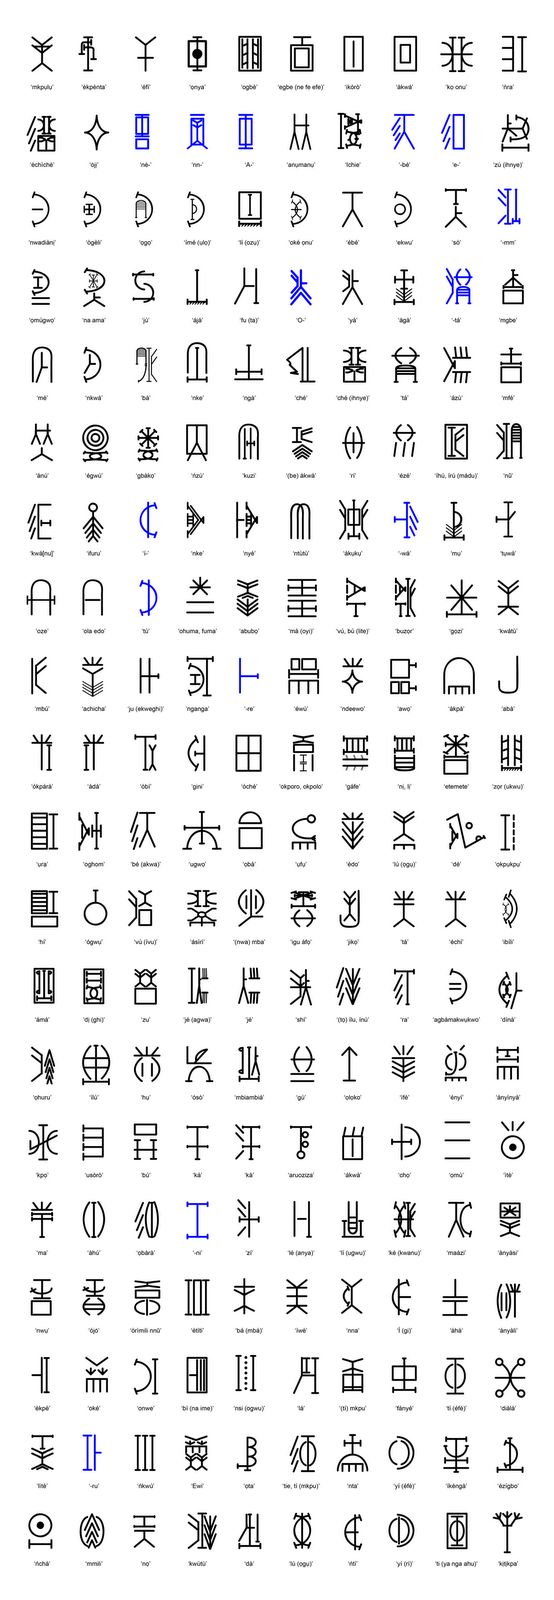 Symbols and Their Meanings   Egyptian Symbols And Their Meanings Nsibidi writing system